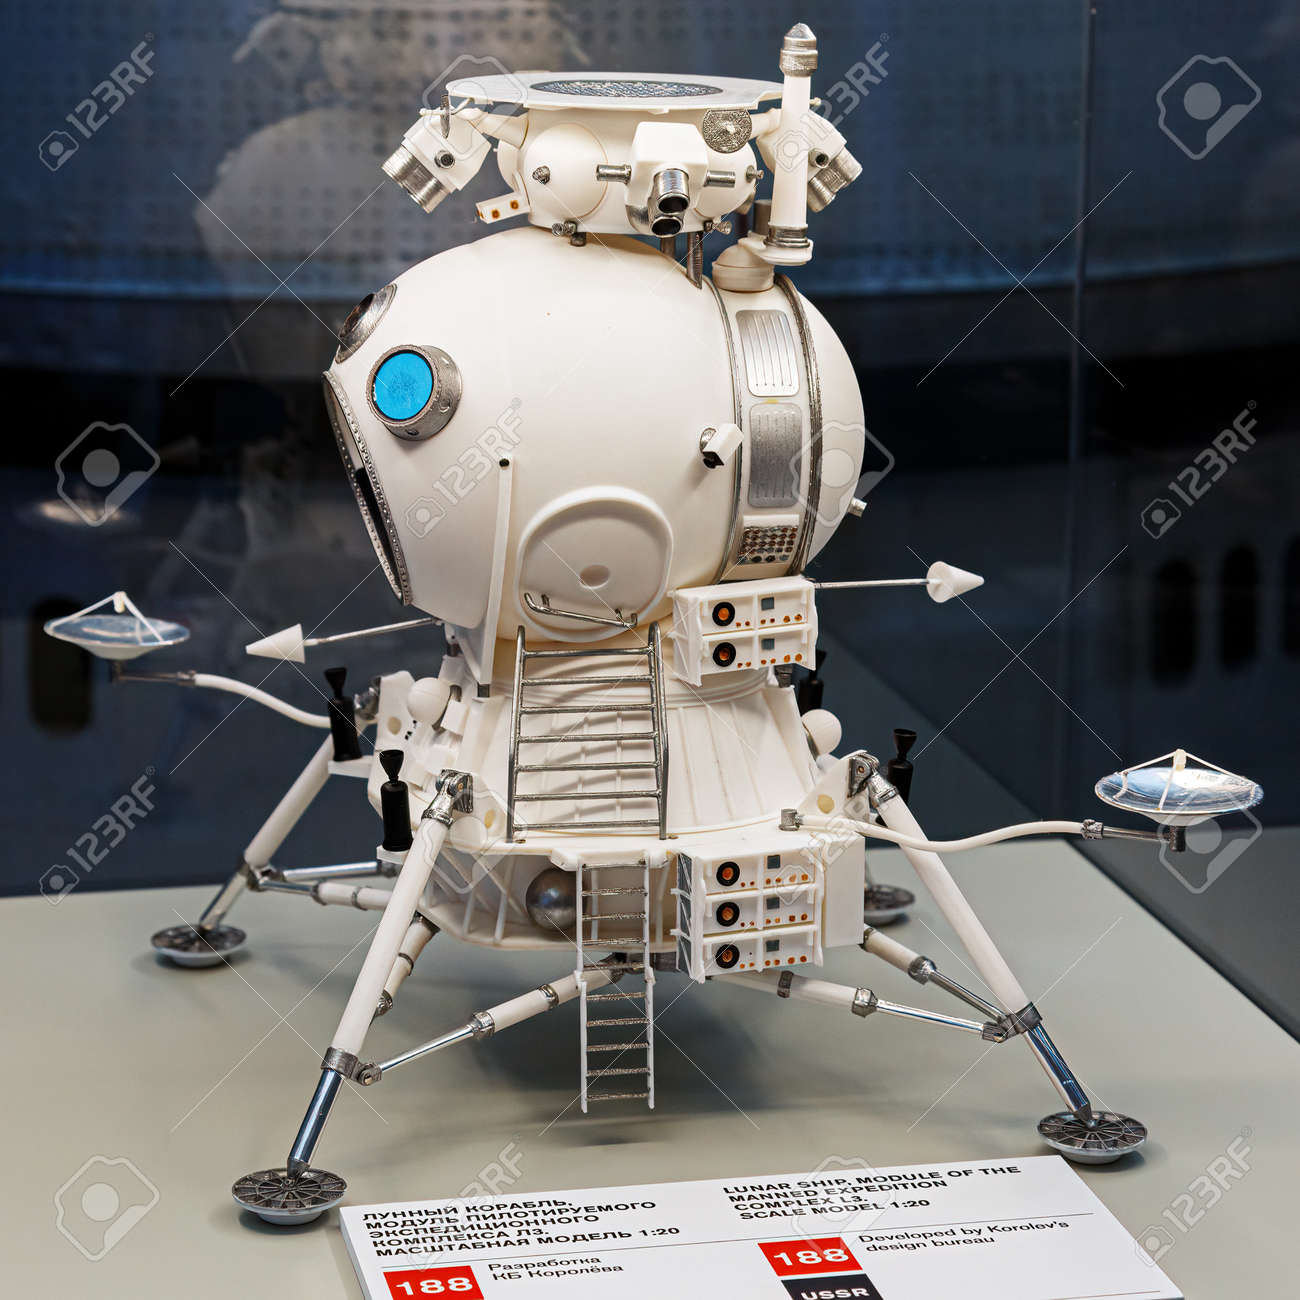 Moscow, Russia - November 28, 2018: Lunar landing module in Space museum. Inside The Cosmonautics and Aviation Centre in the Cosmos pavilion of VDNH. Aircraft exhibition. Rocket science - 167180512